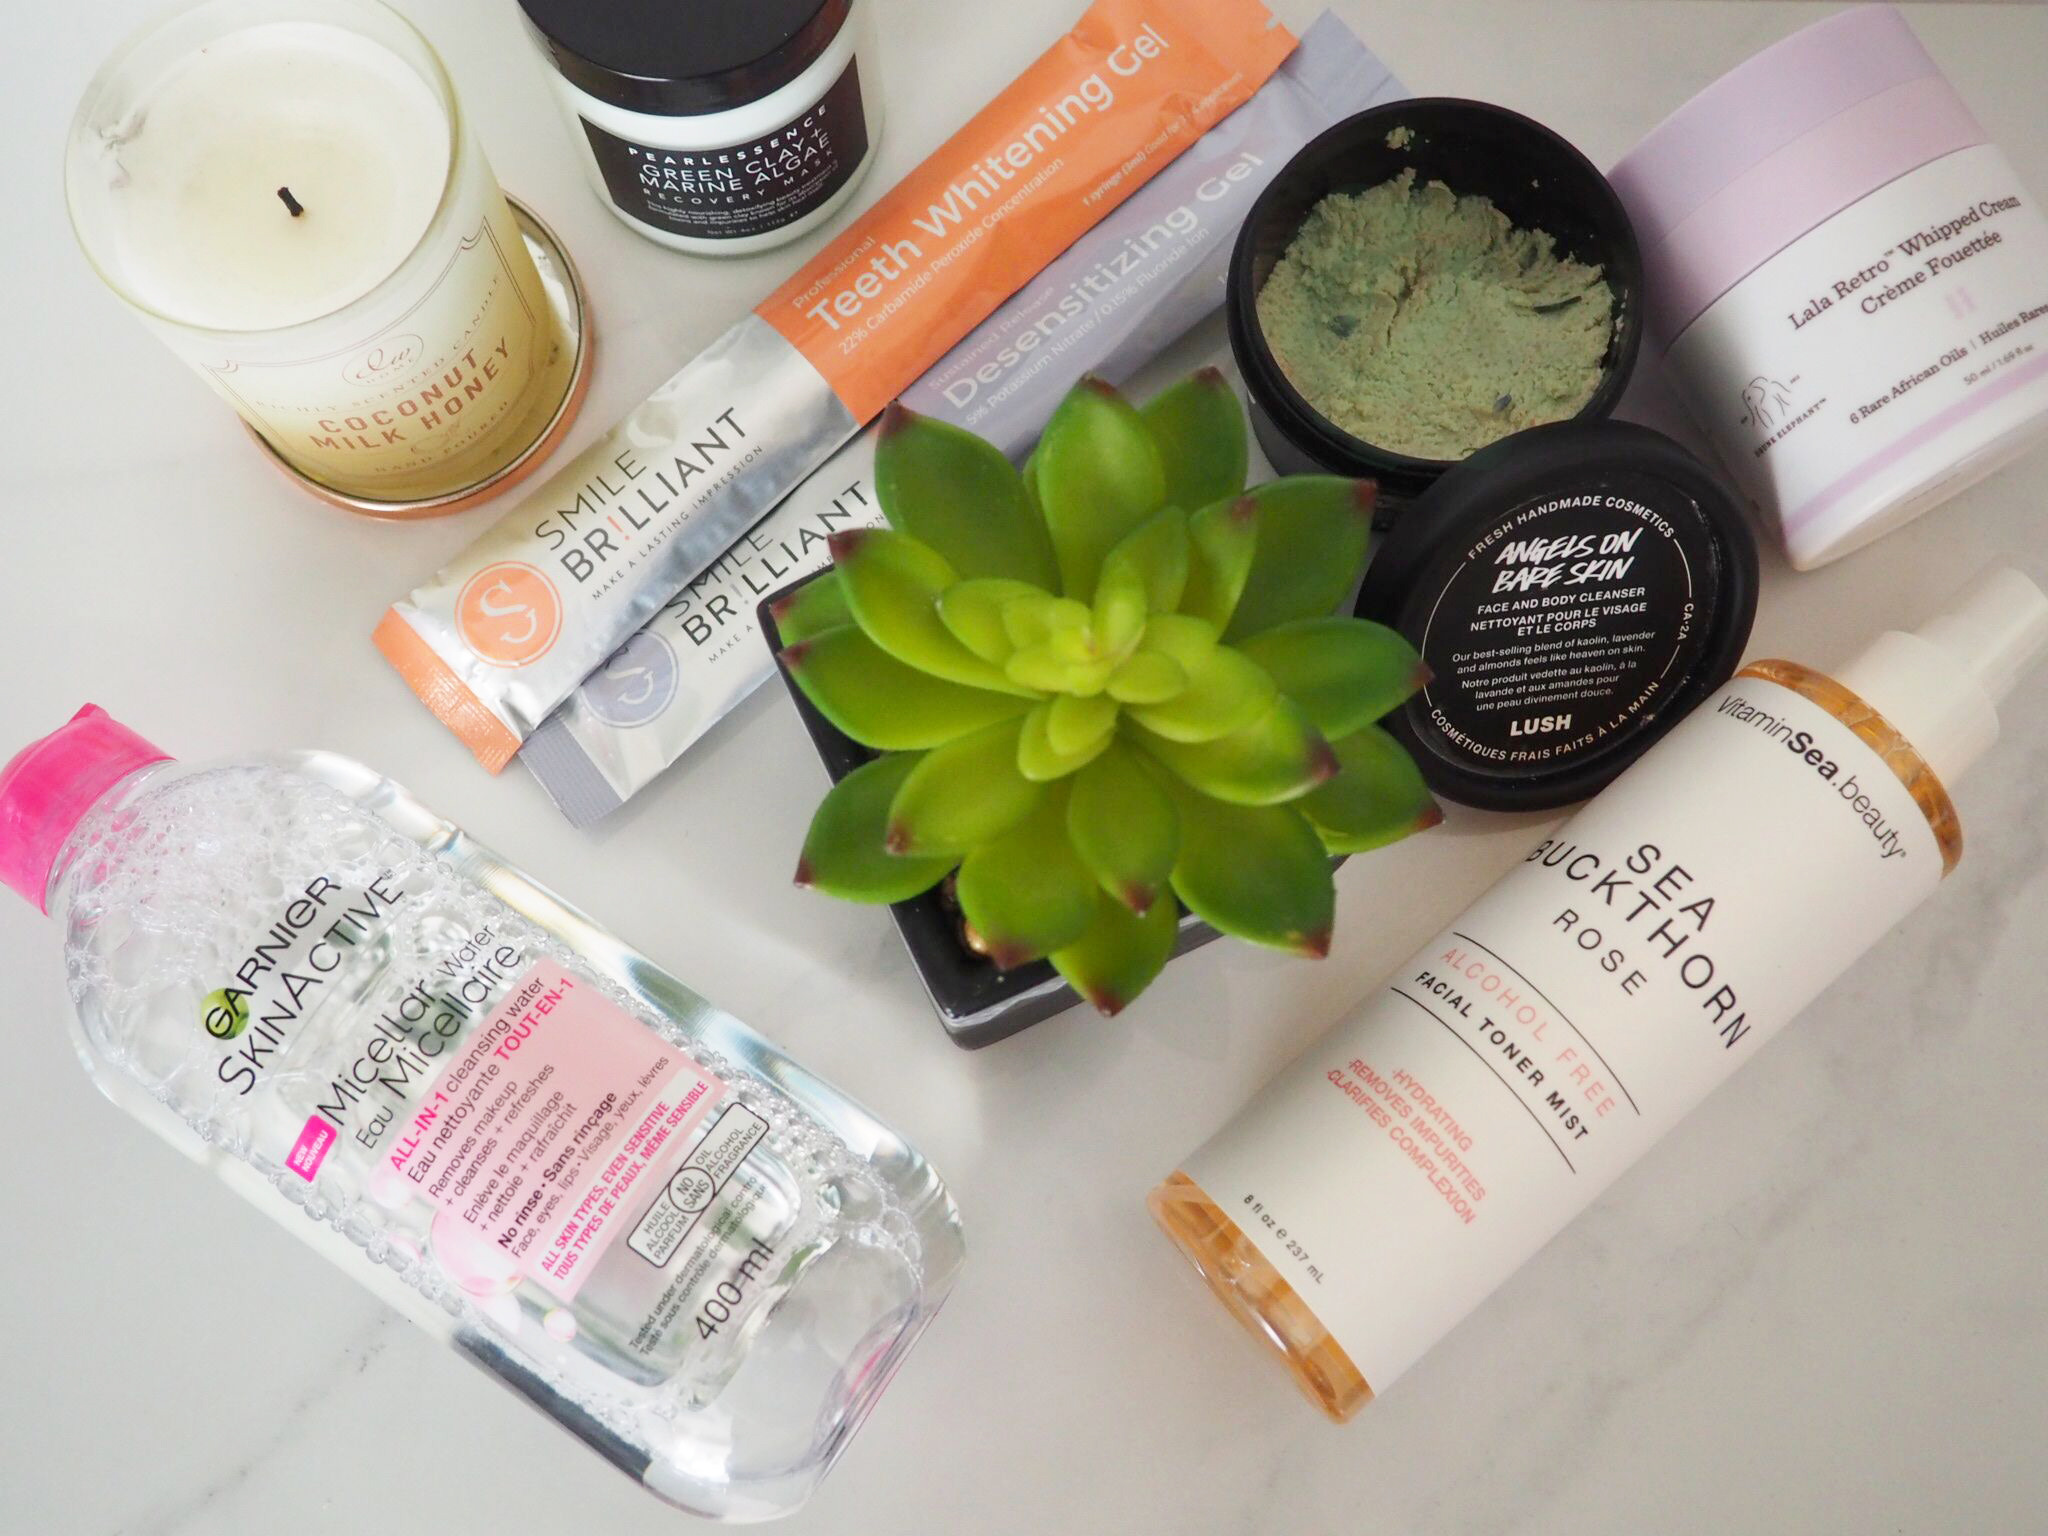 Products from my nighttime routine